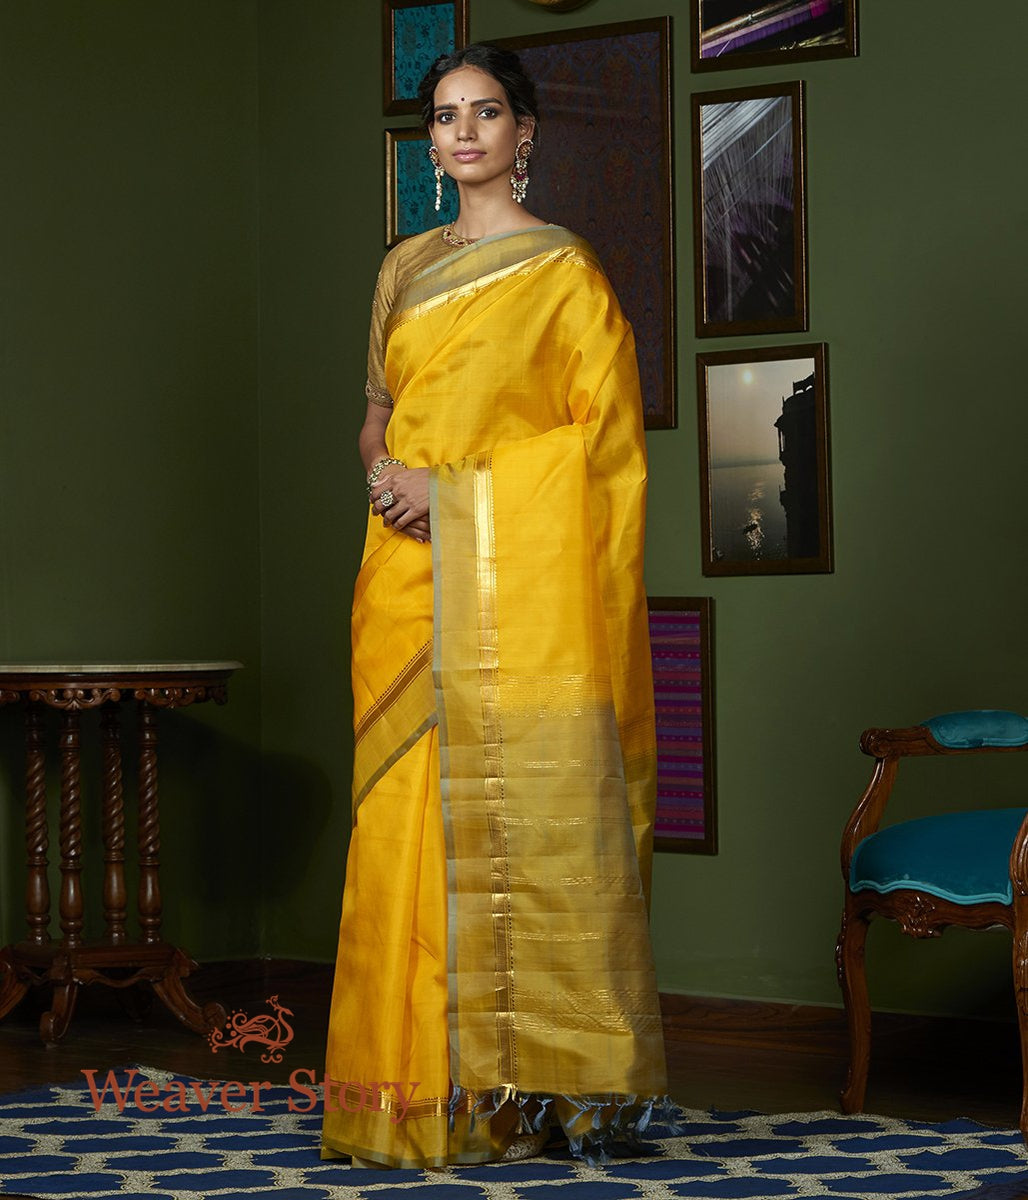 Handwoven Yellow Kanjivaram Silk Saree with Light Green Border